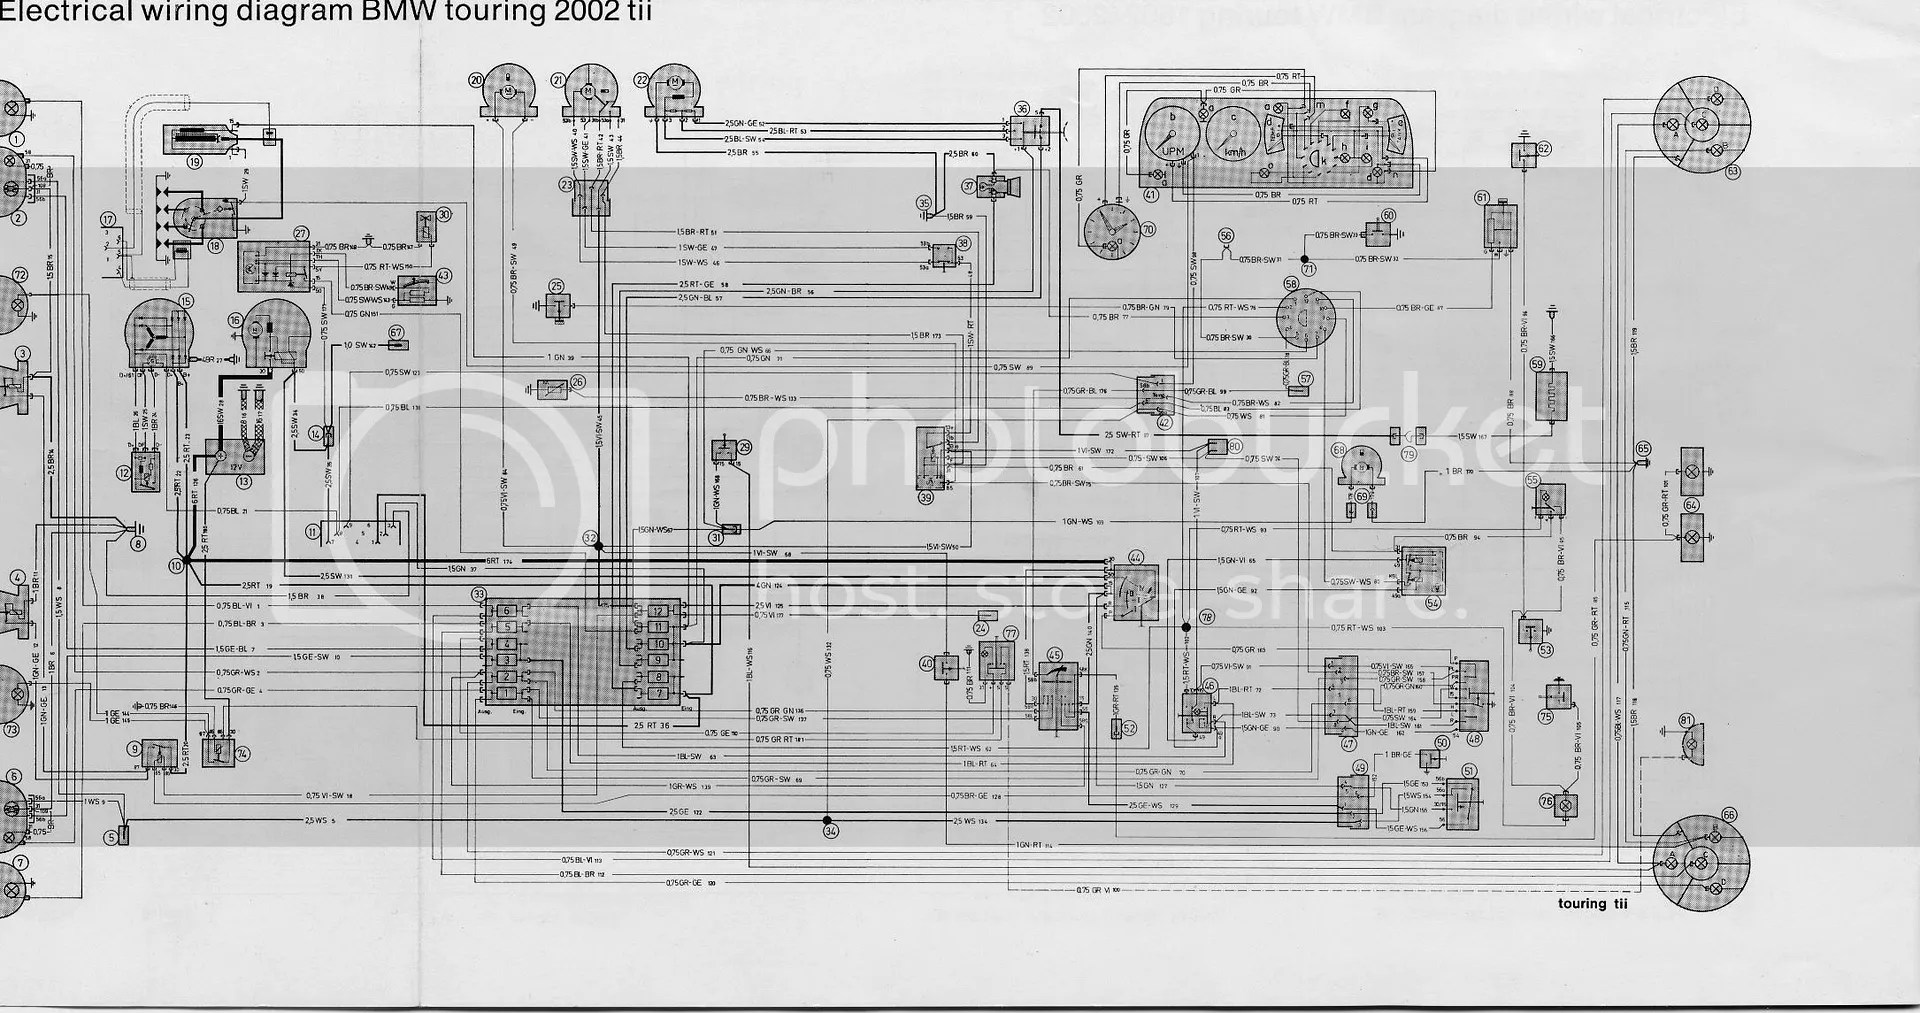 01 Bmw 330 Wiring Diagrams on electric trailer brake wiring diagrams